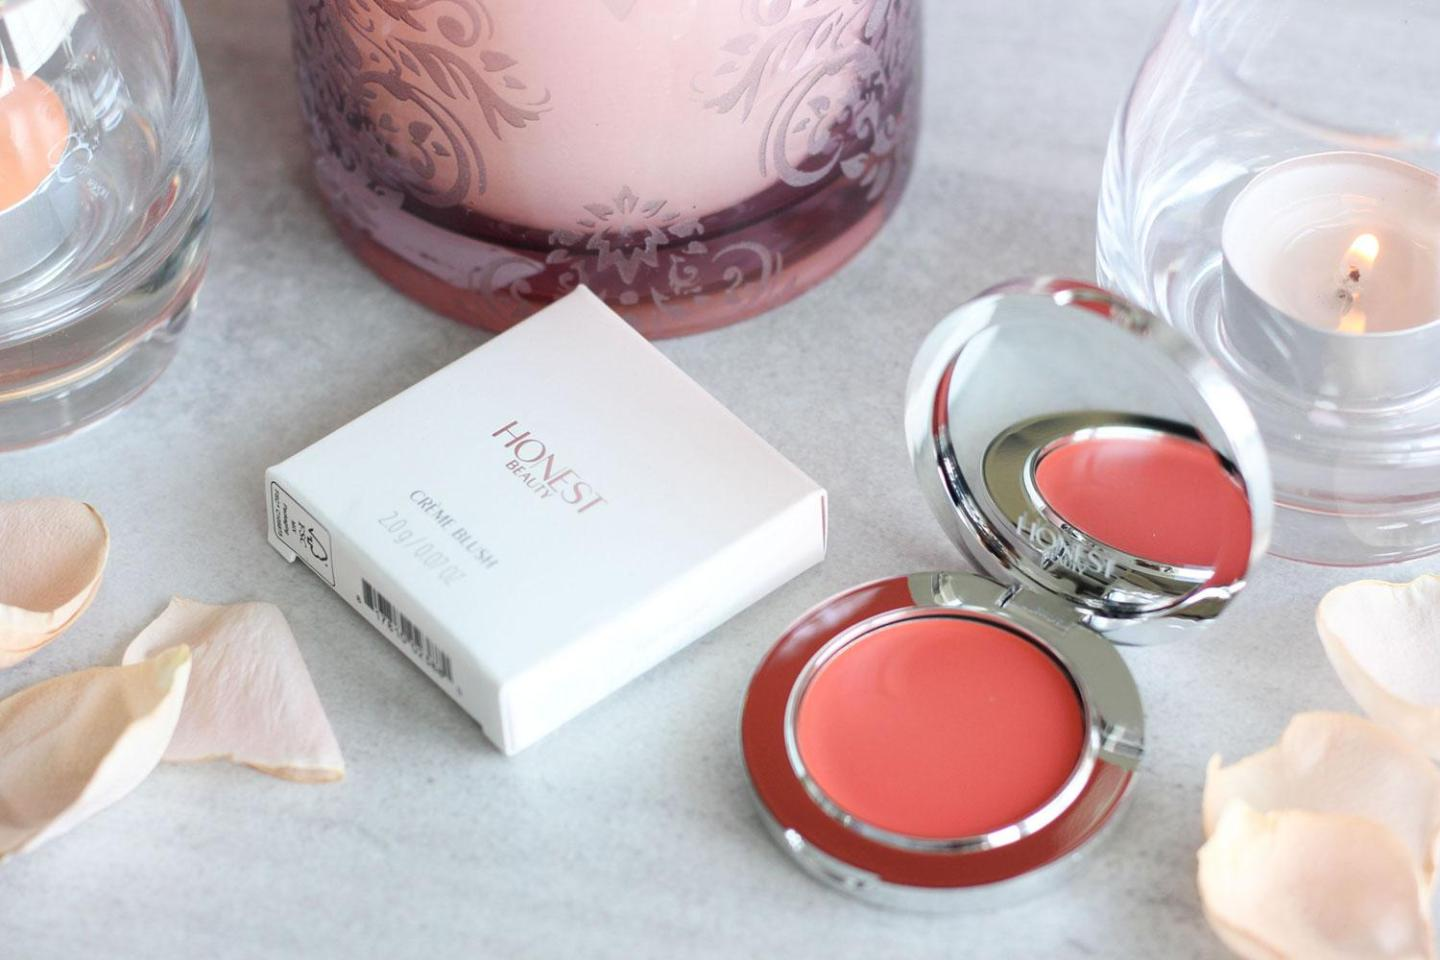 Honest Beauty Creme Blush Review